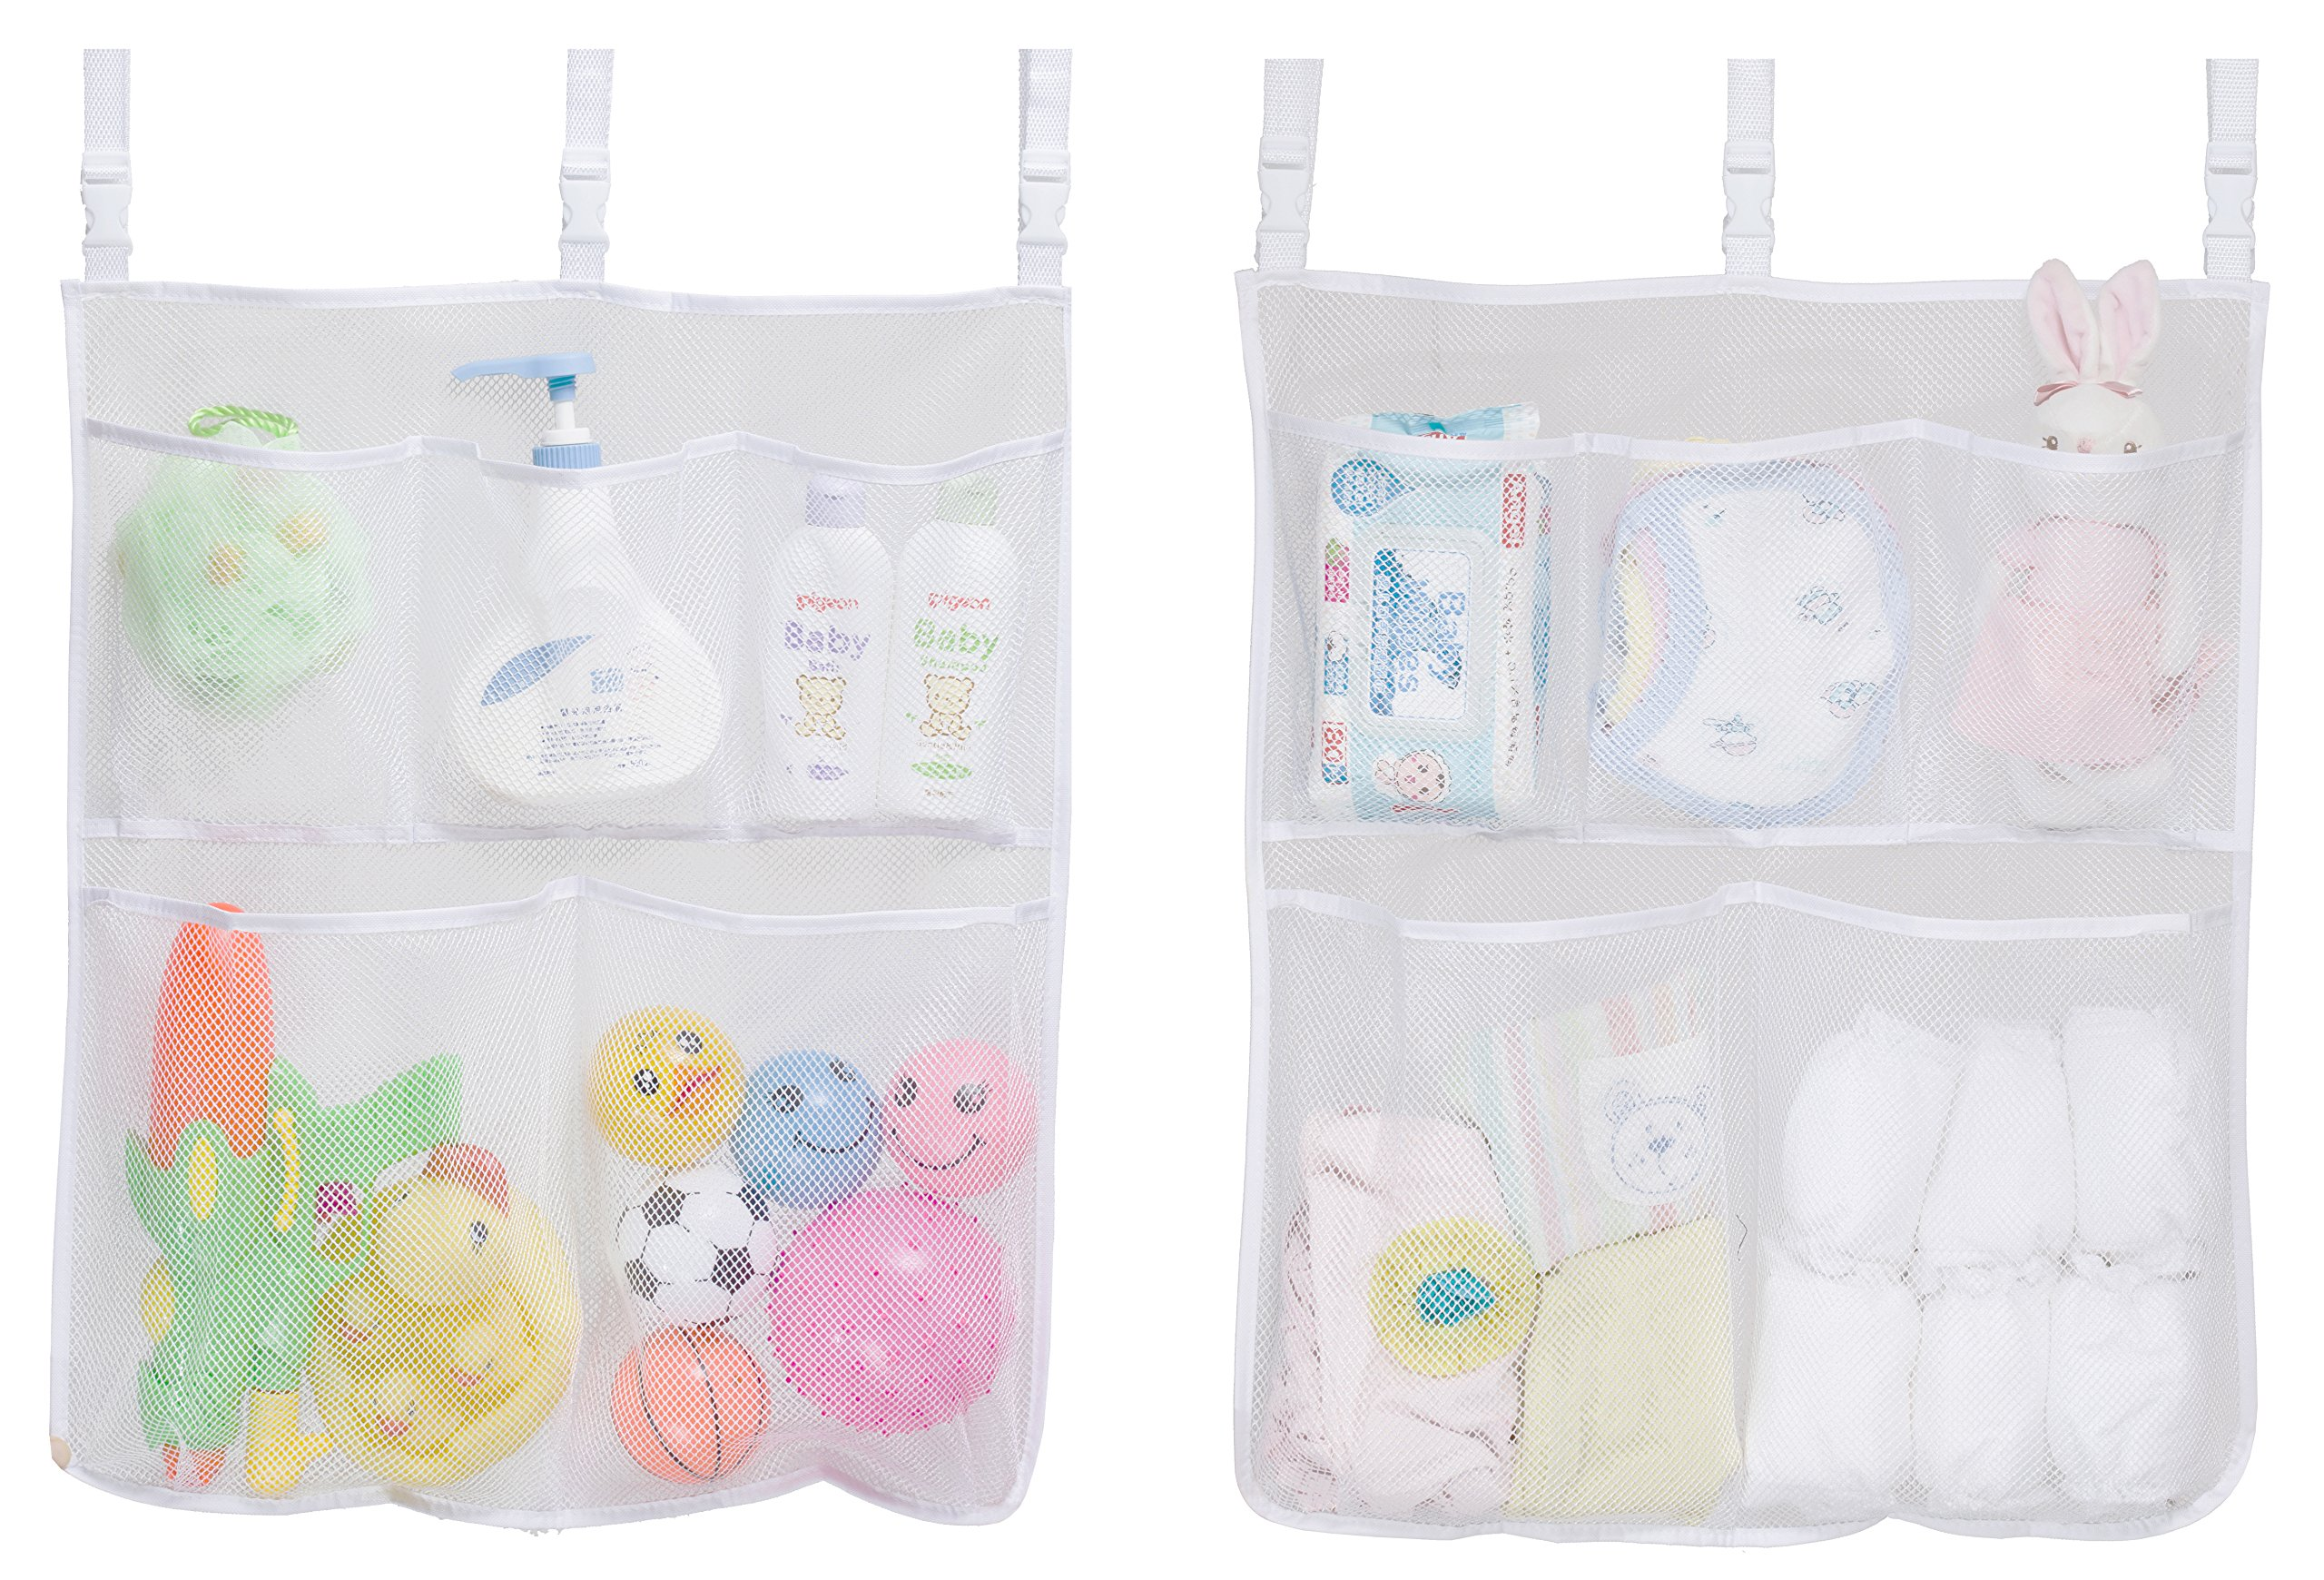 Mesh Bath Toy Organizer Nursery Baby Diaper Caddy Hanging Crib Organization Storage for Changing Table, Wall, Bathtub, Bathroom with 3 Adjustable Straps